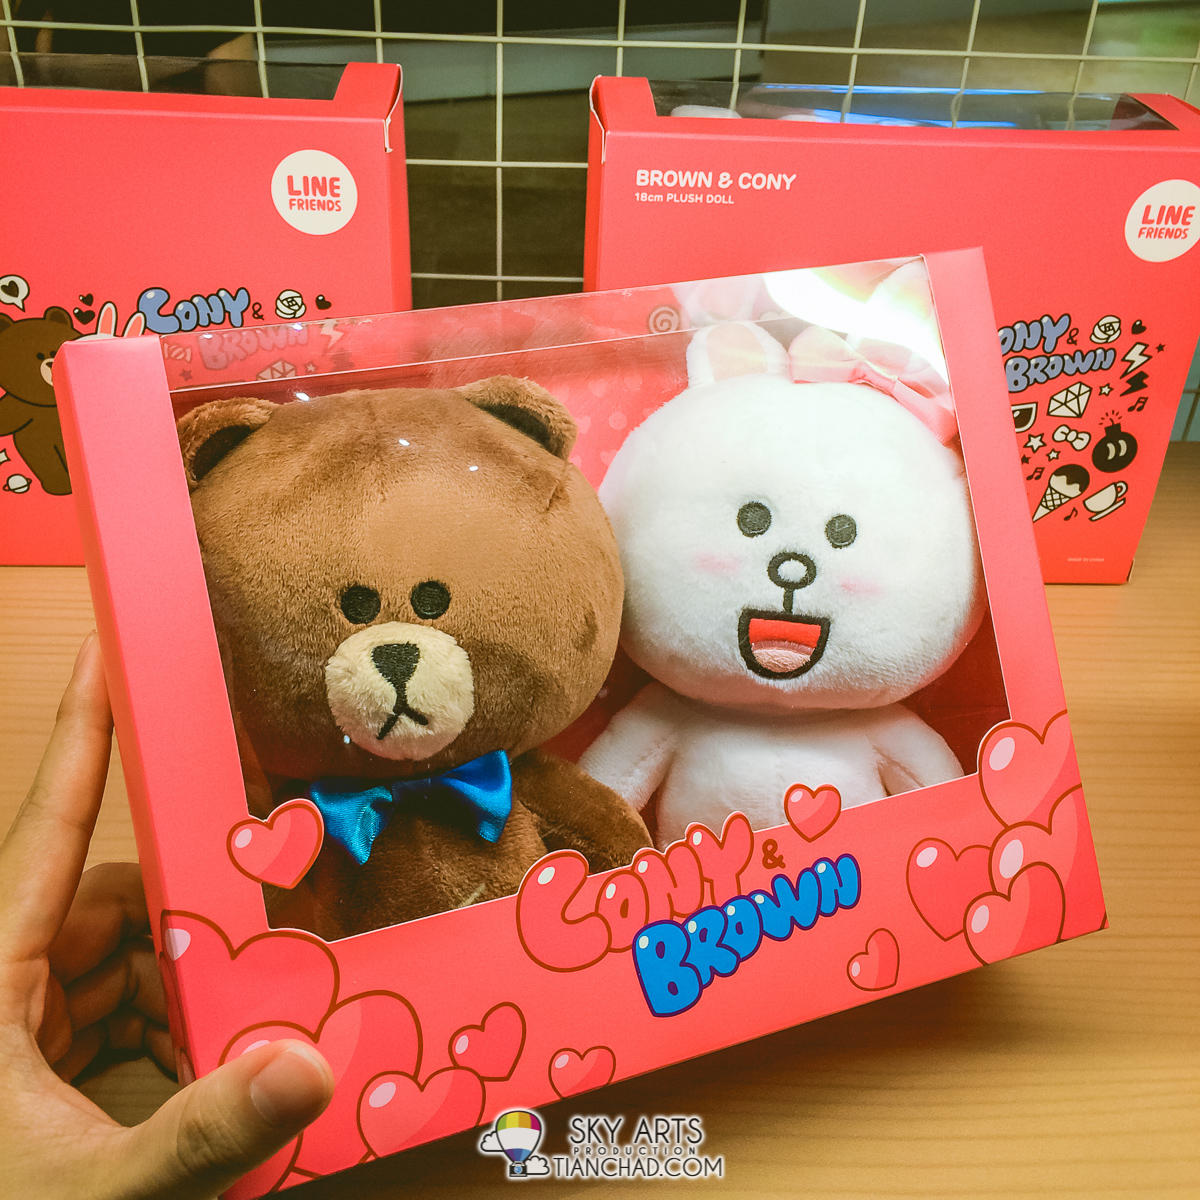 Cony and Brown at LINE Friends Pop-Up Store